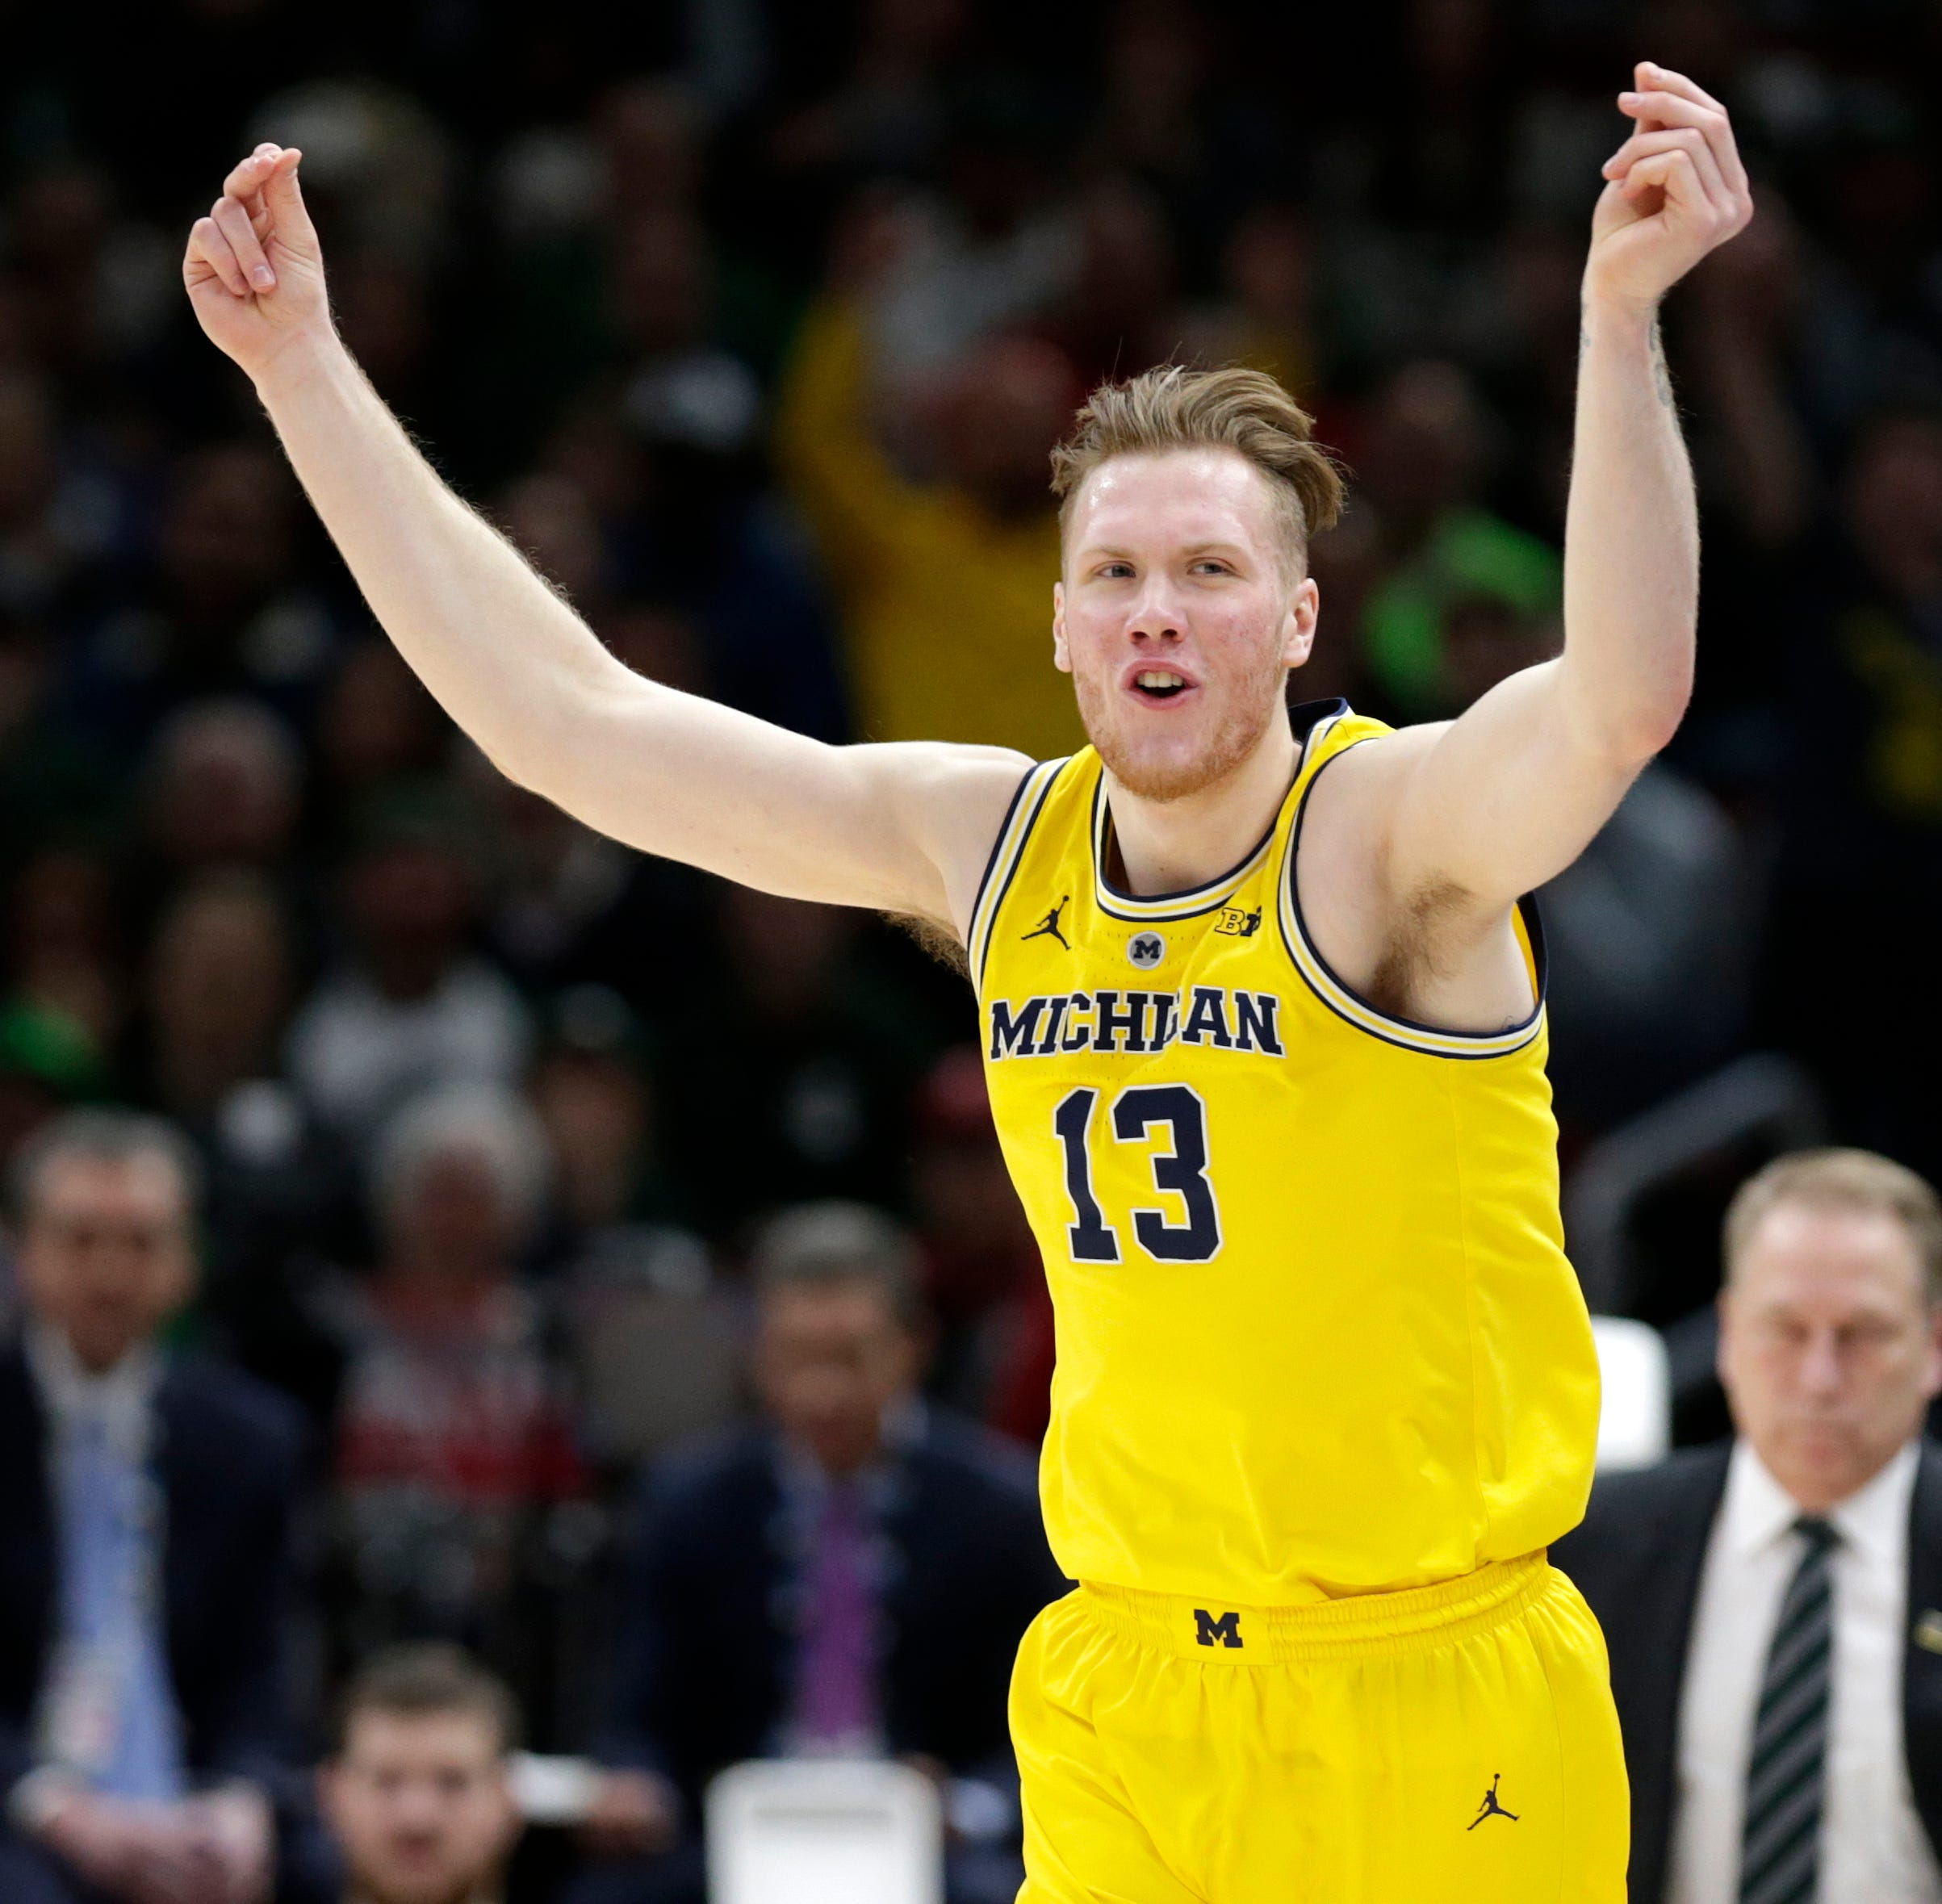 'We'll be a tough out': Michigan gets No. 2 seed in West, opens vs. Montana